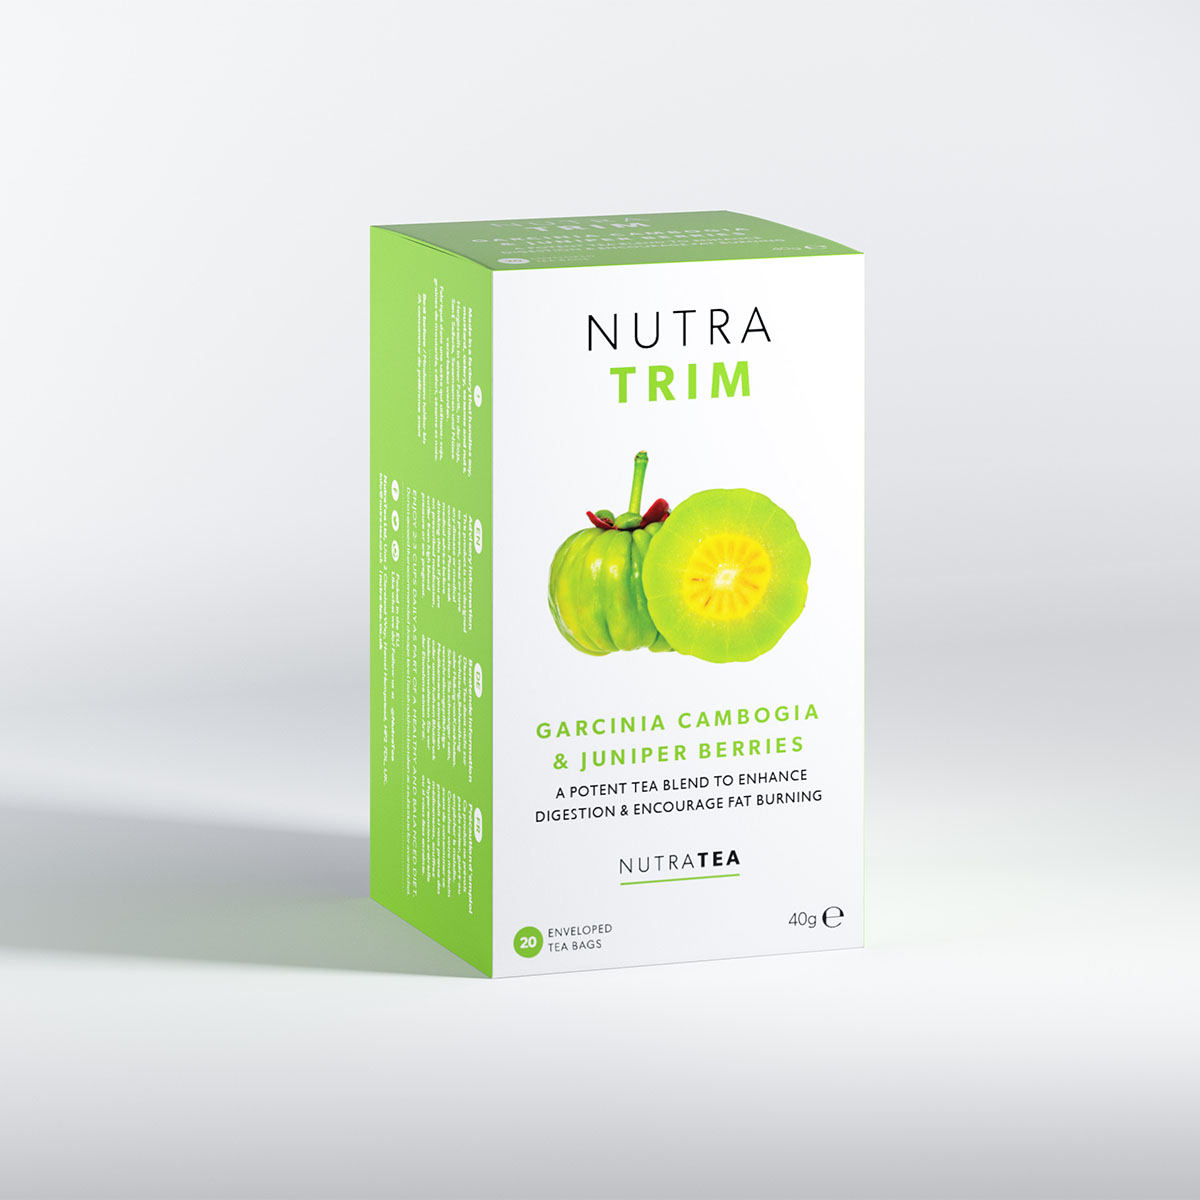 050_Box_NT_Garcina Cambogia Juniper Berries_Box_ThreeQuarter